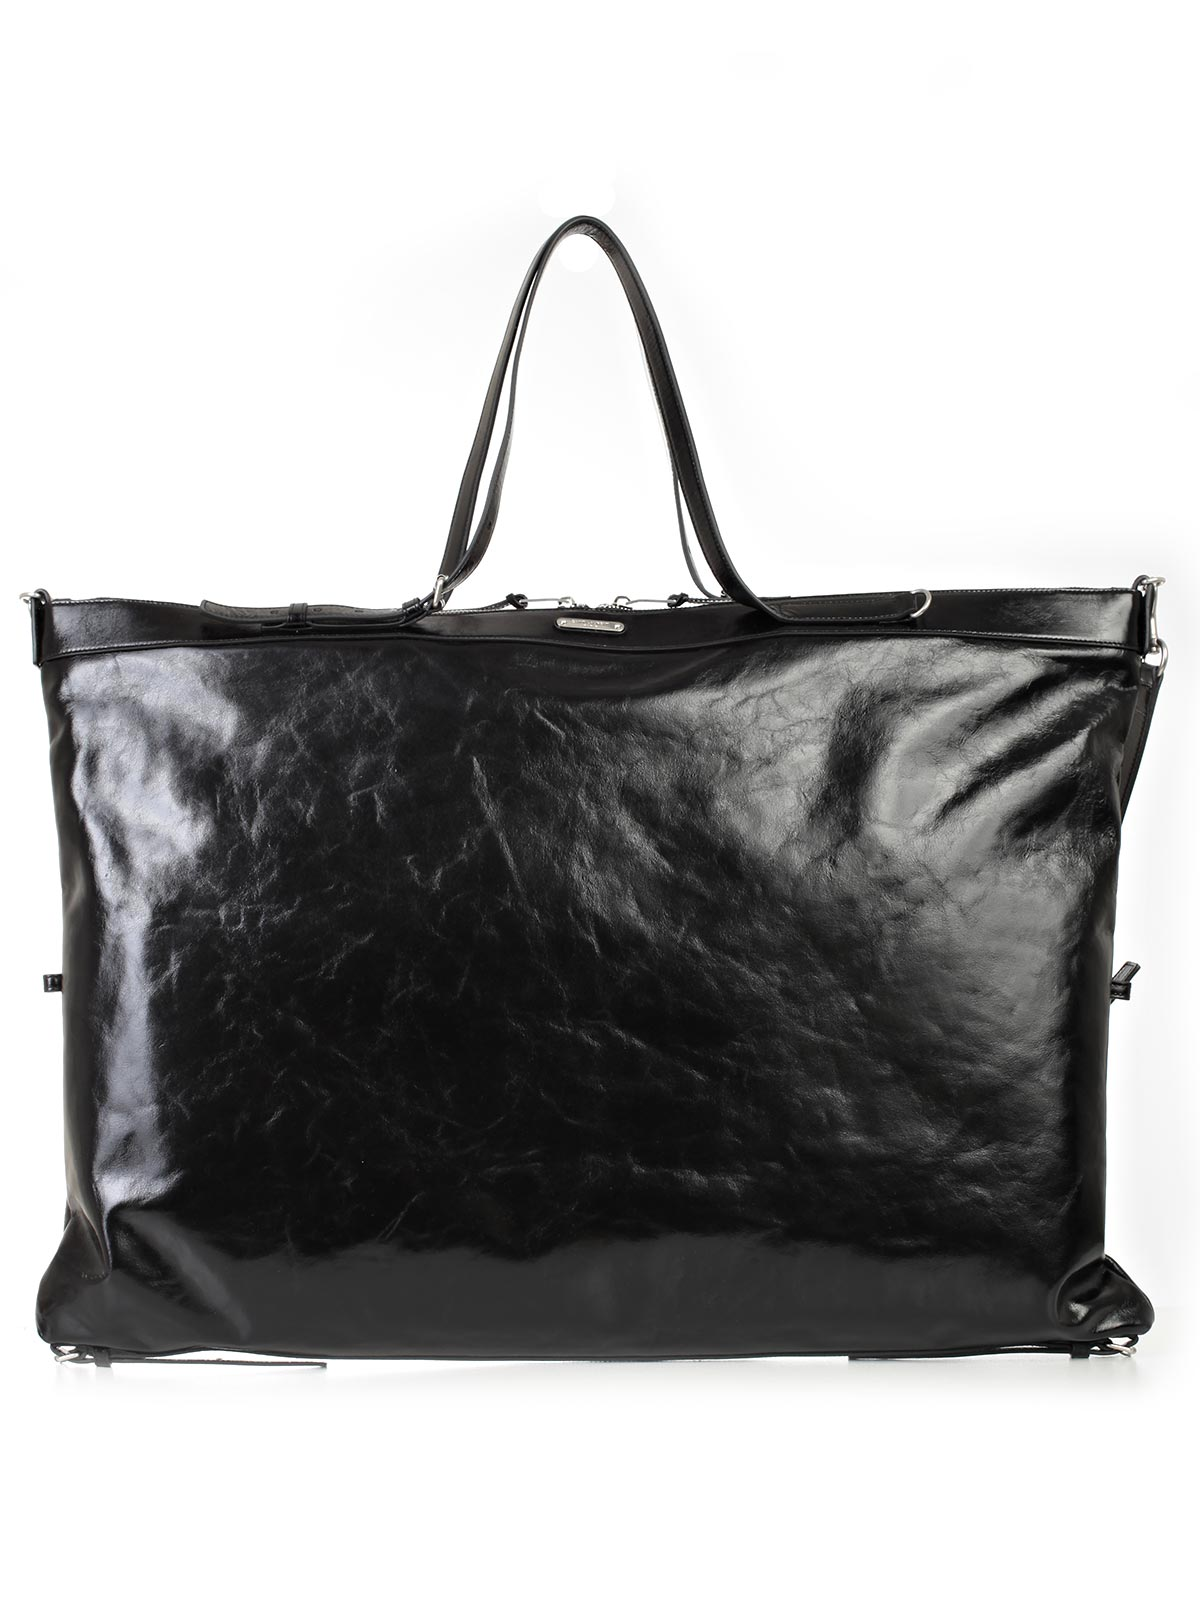 Picture of SAINT LAURENT Totes